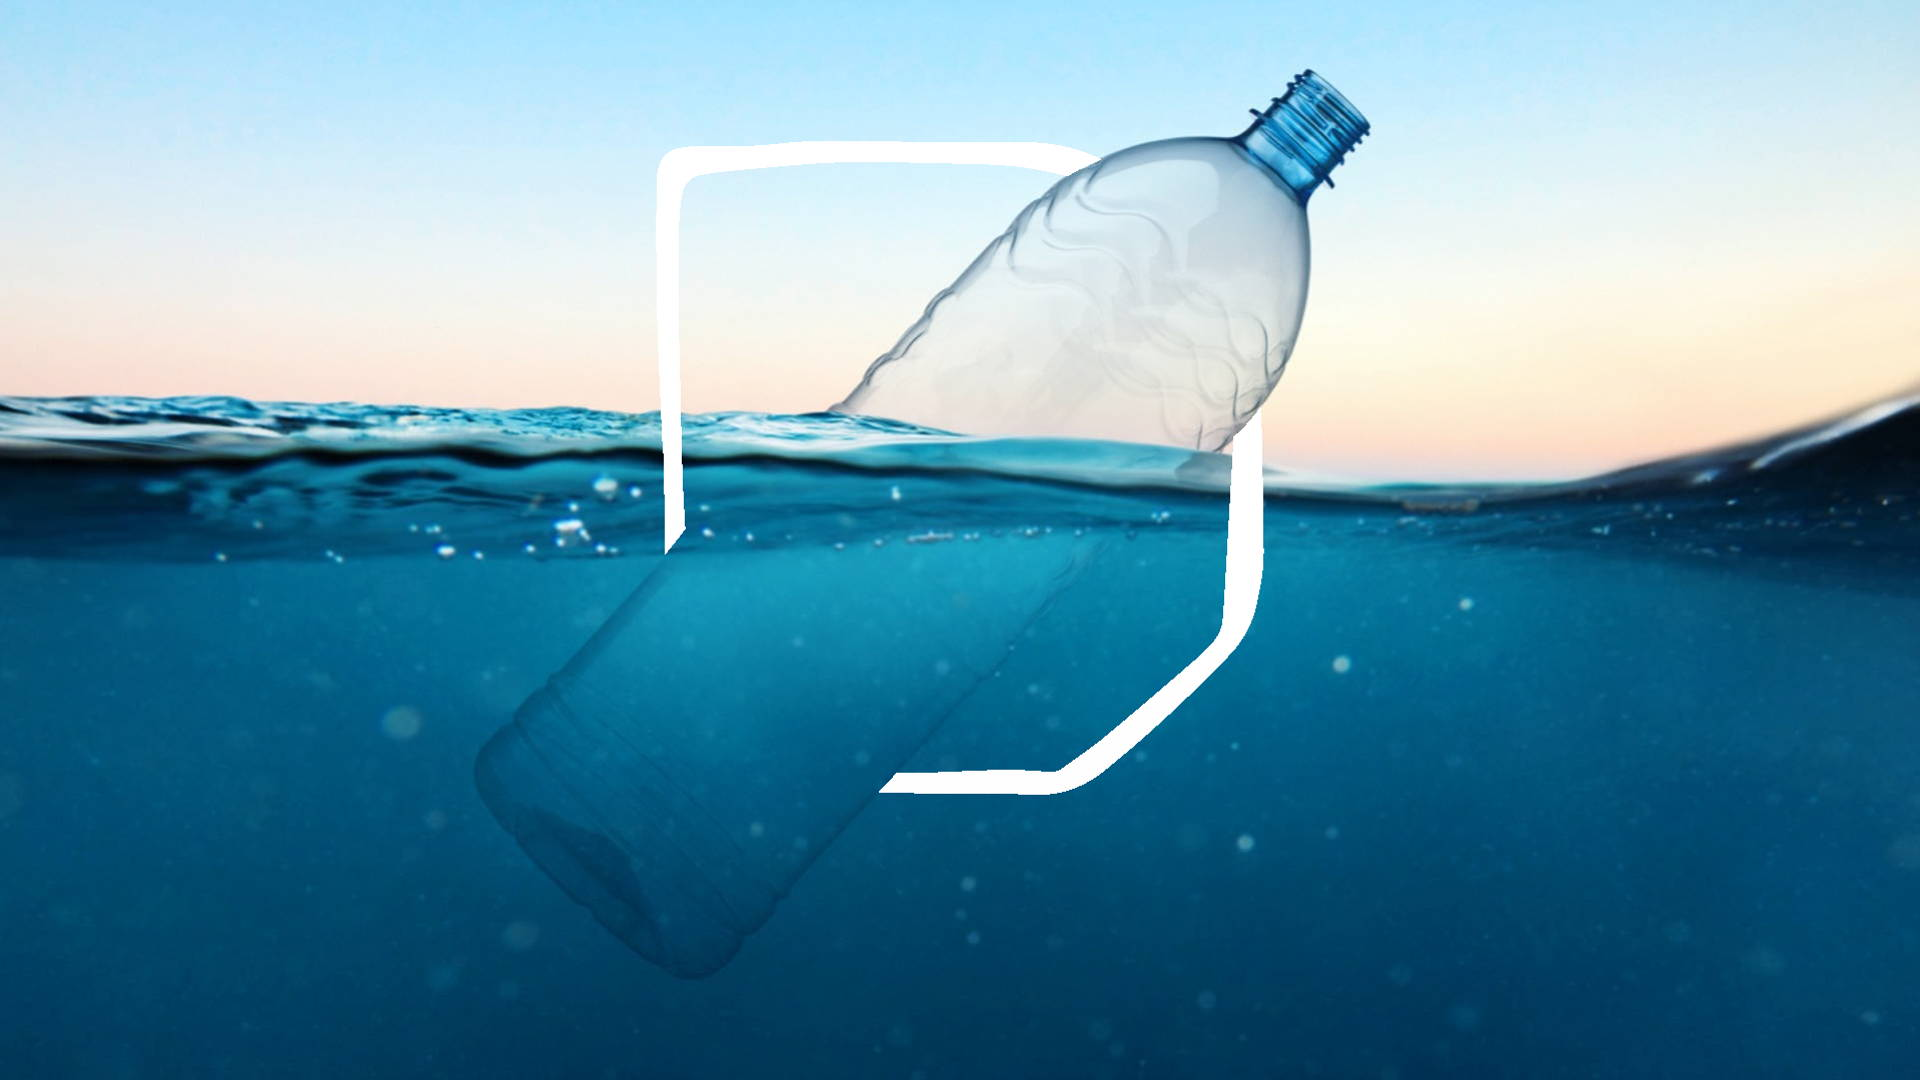 The History of Plastic: Why Won't Big Beverage Brands Ditch the Plastic  Bottles? | Dieline - Design, Branding & Packaging Inspiration